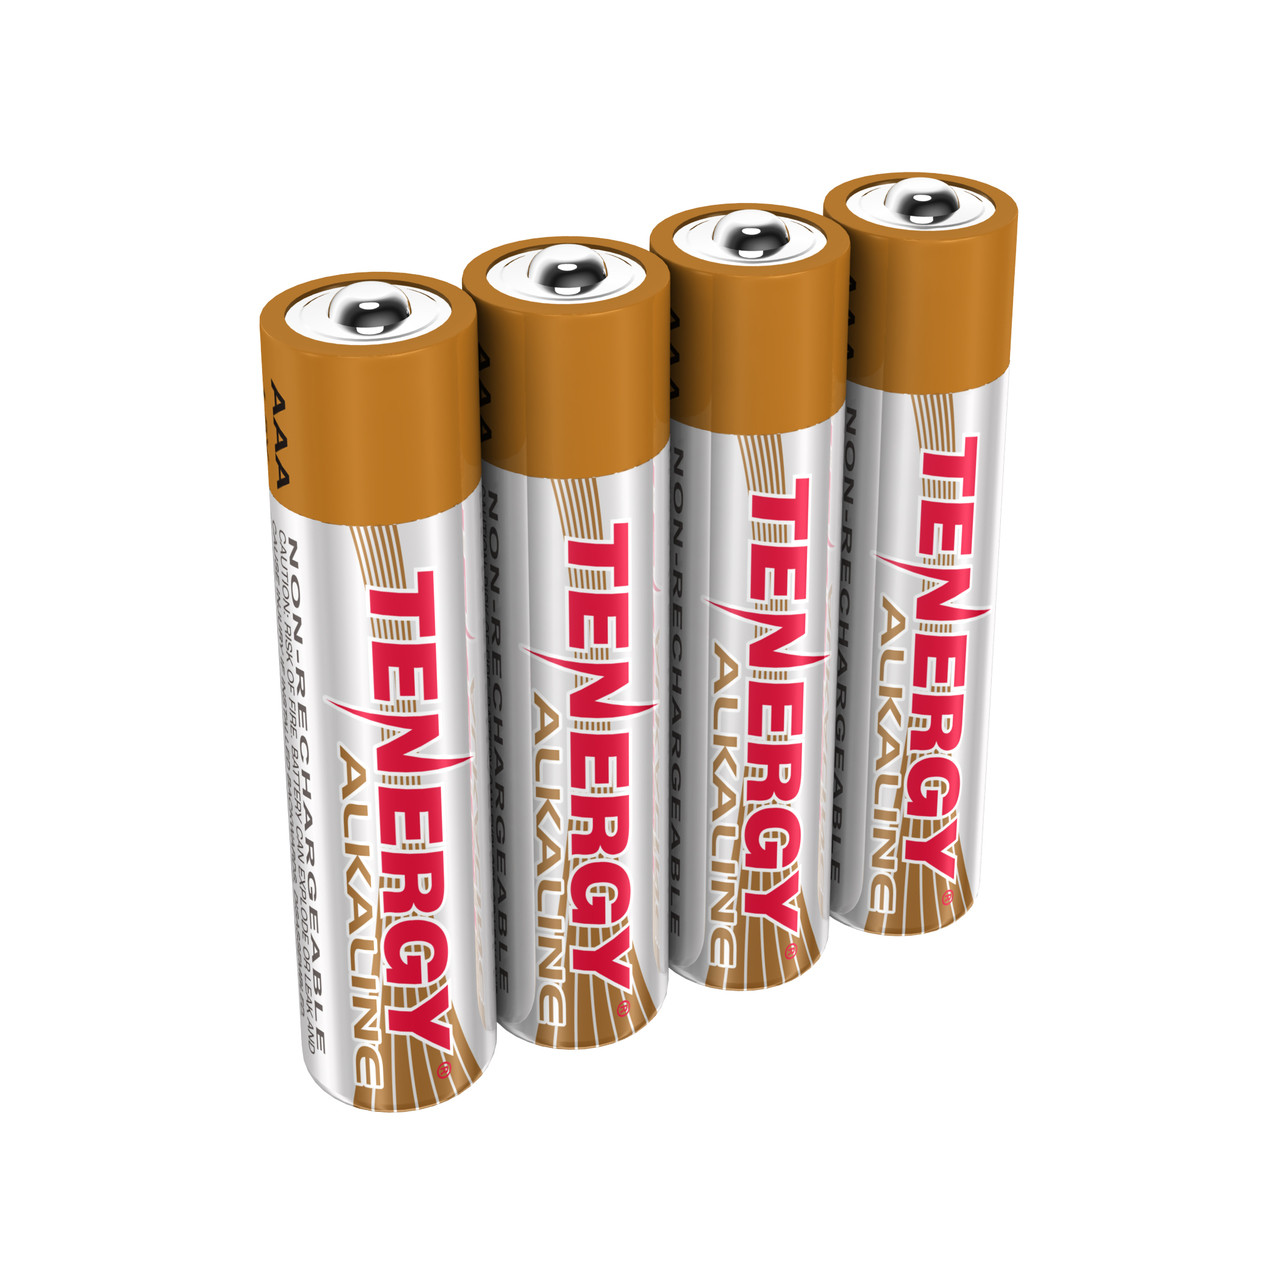 1 Card: 4pcs Tenergy AAA Size Alkaline Batteries